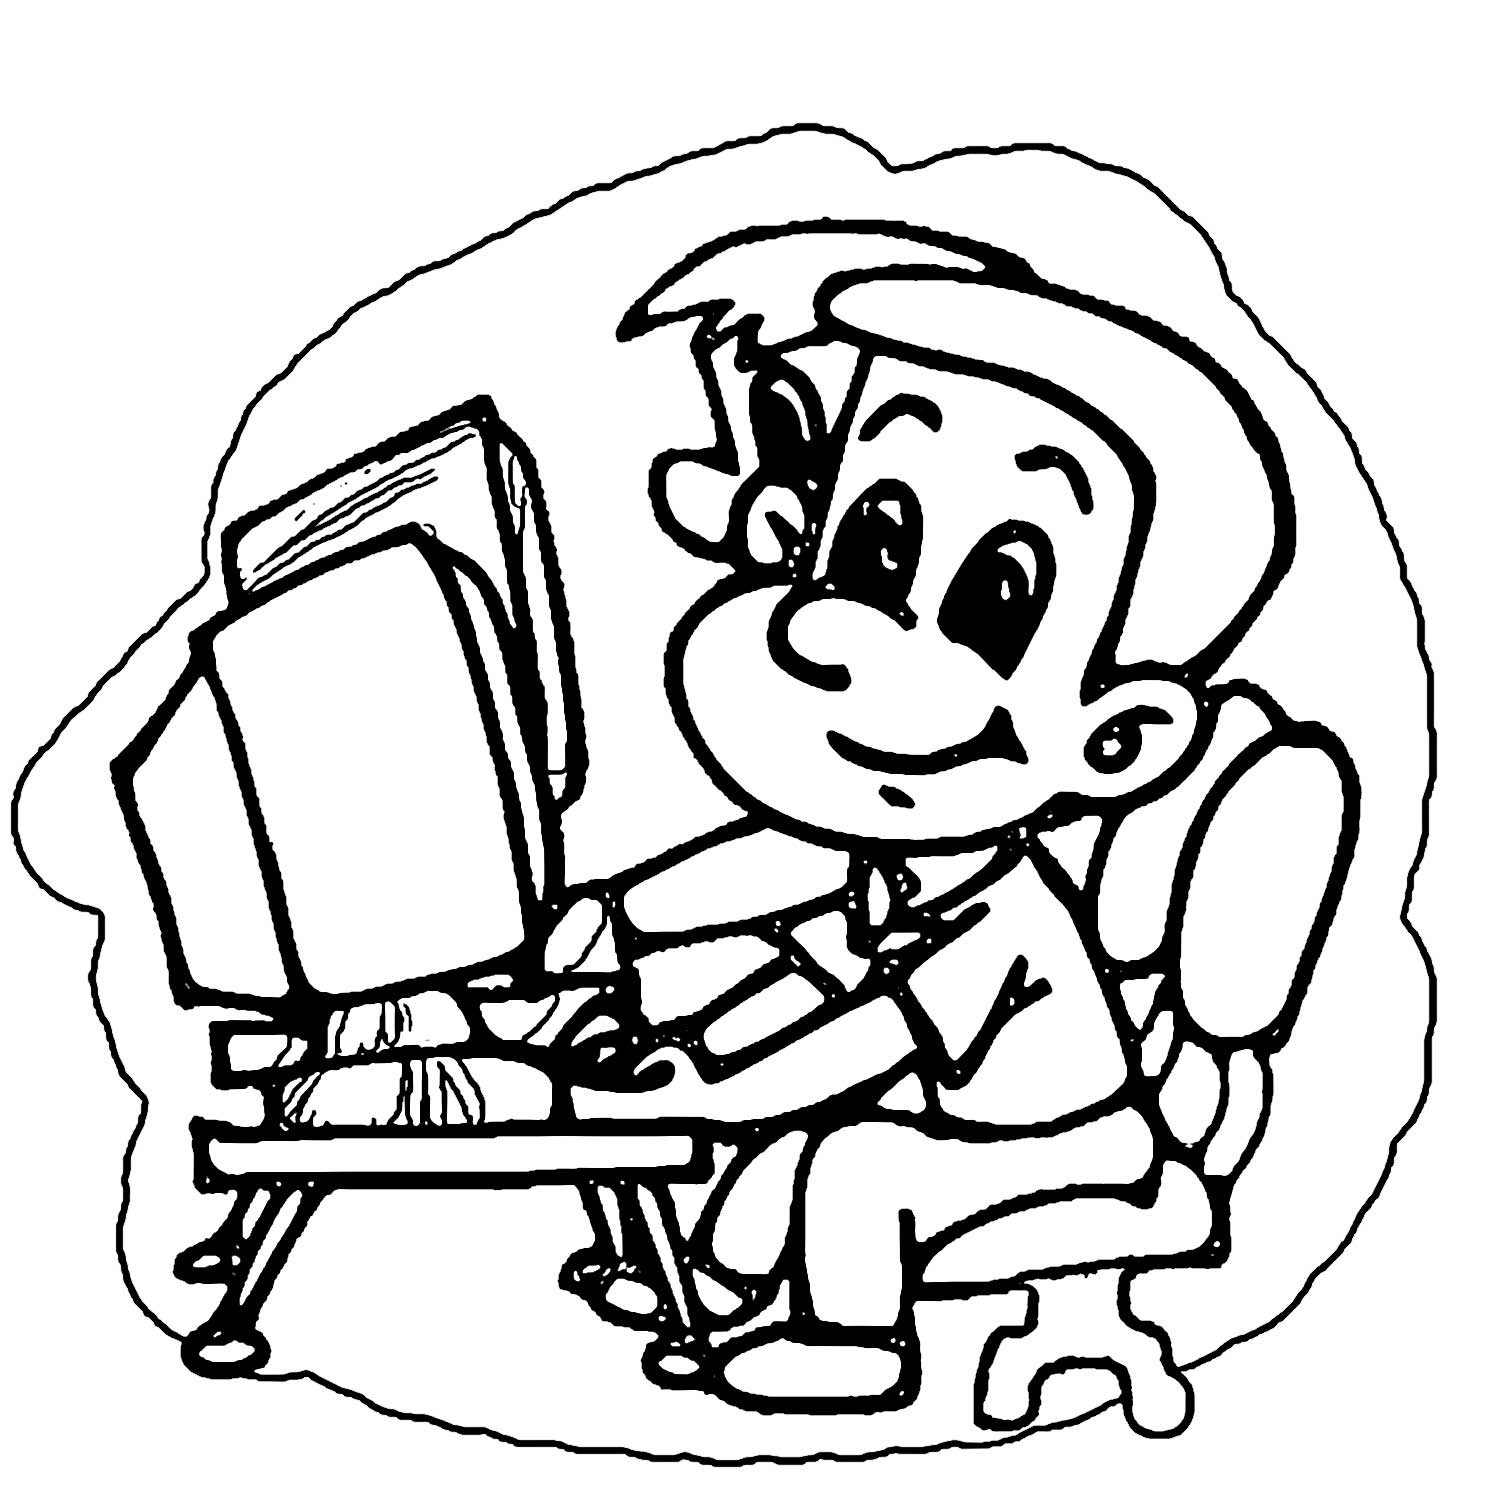 coloring pages for 3rd graders 3rd grade coloring pages free download on clipartmag pages for coloring 3rd graders